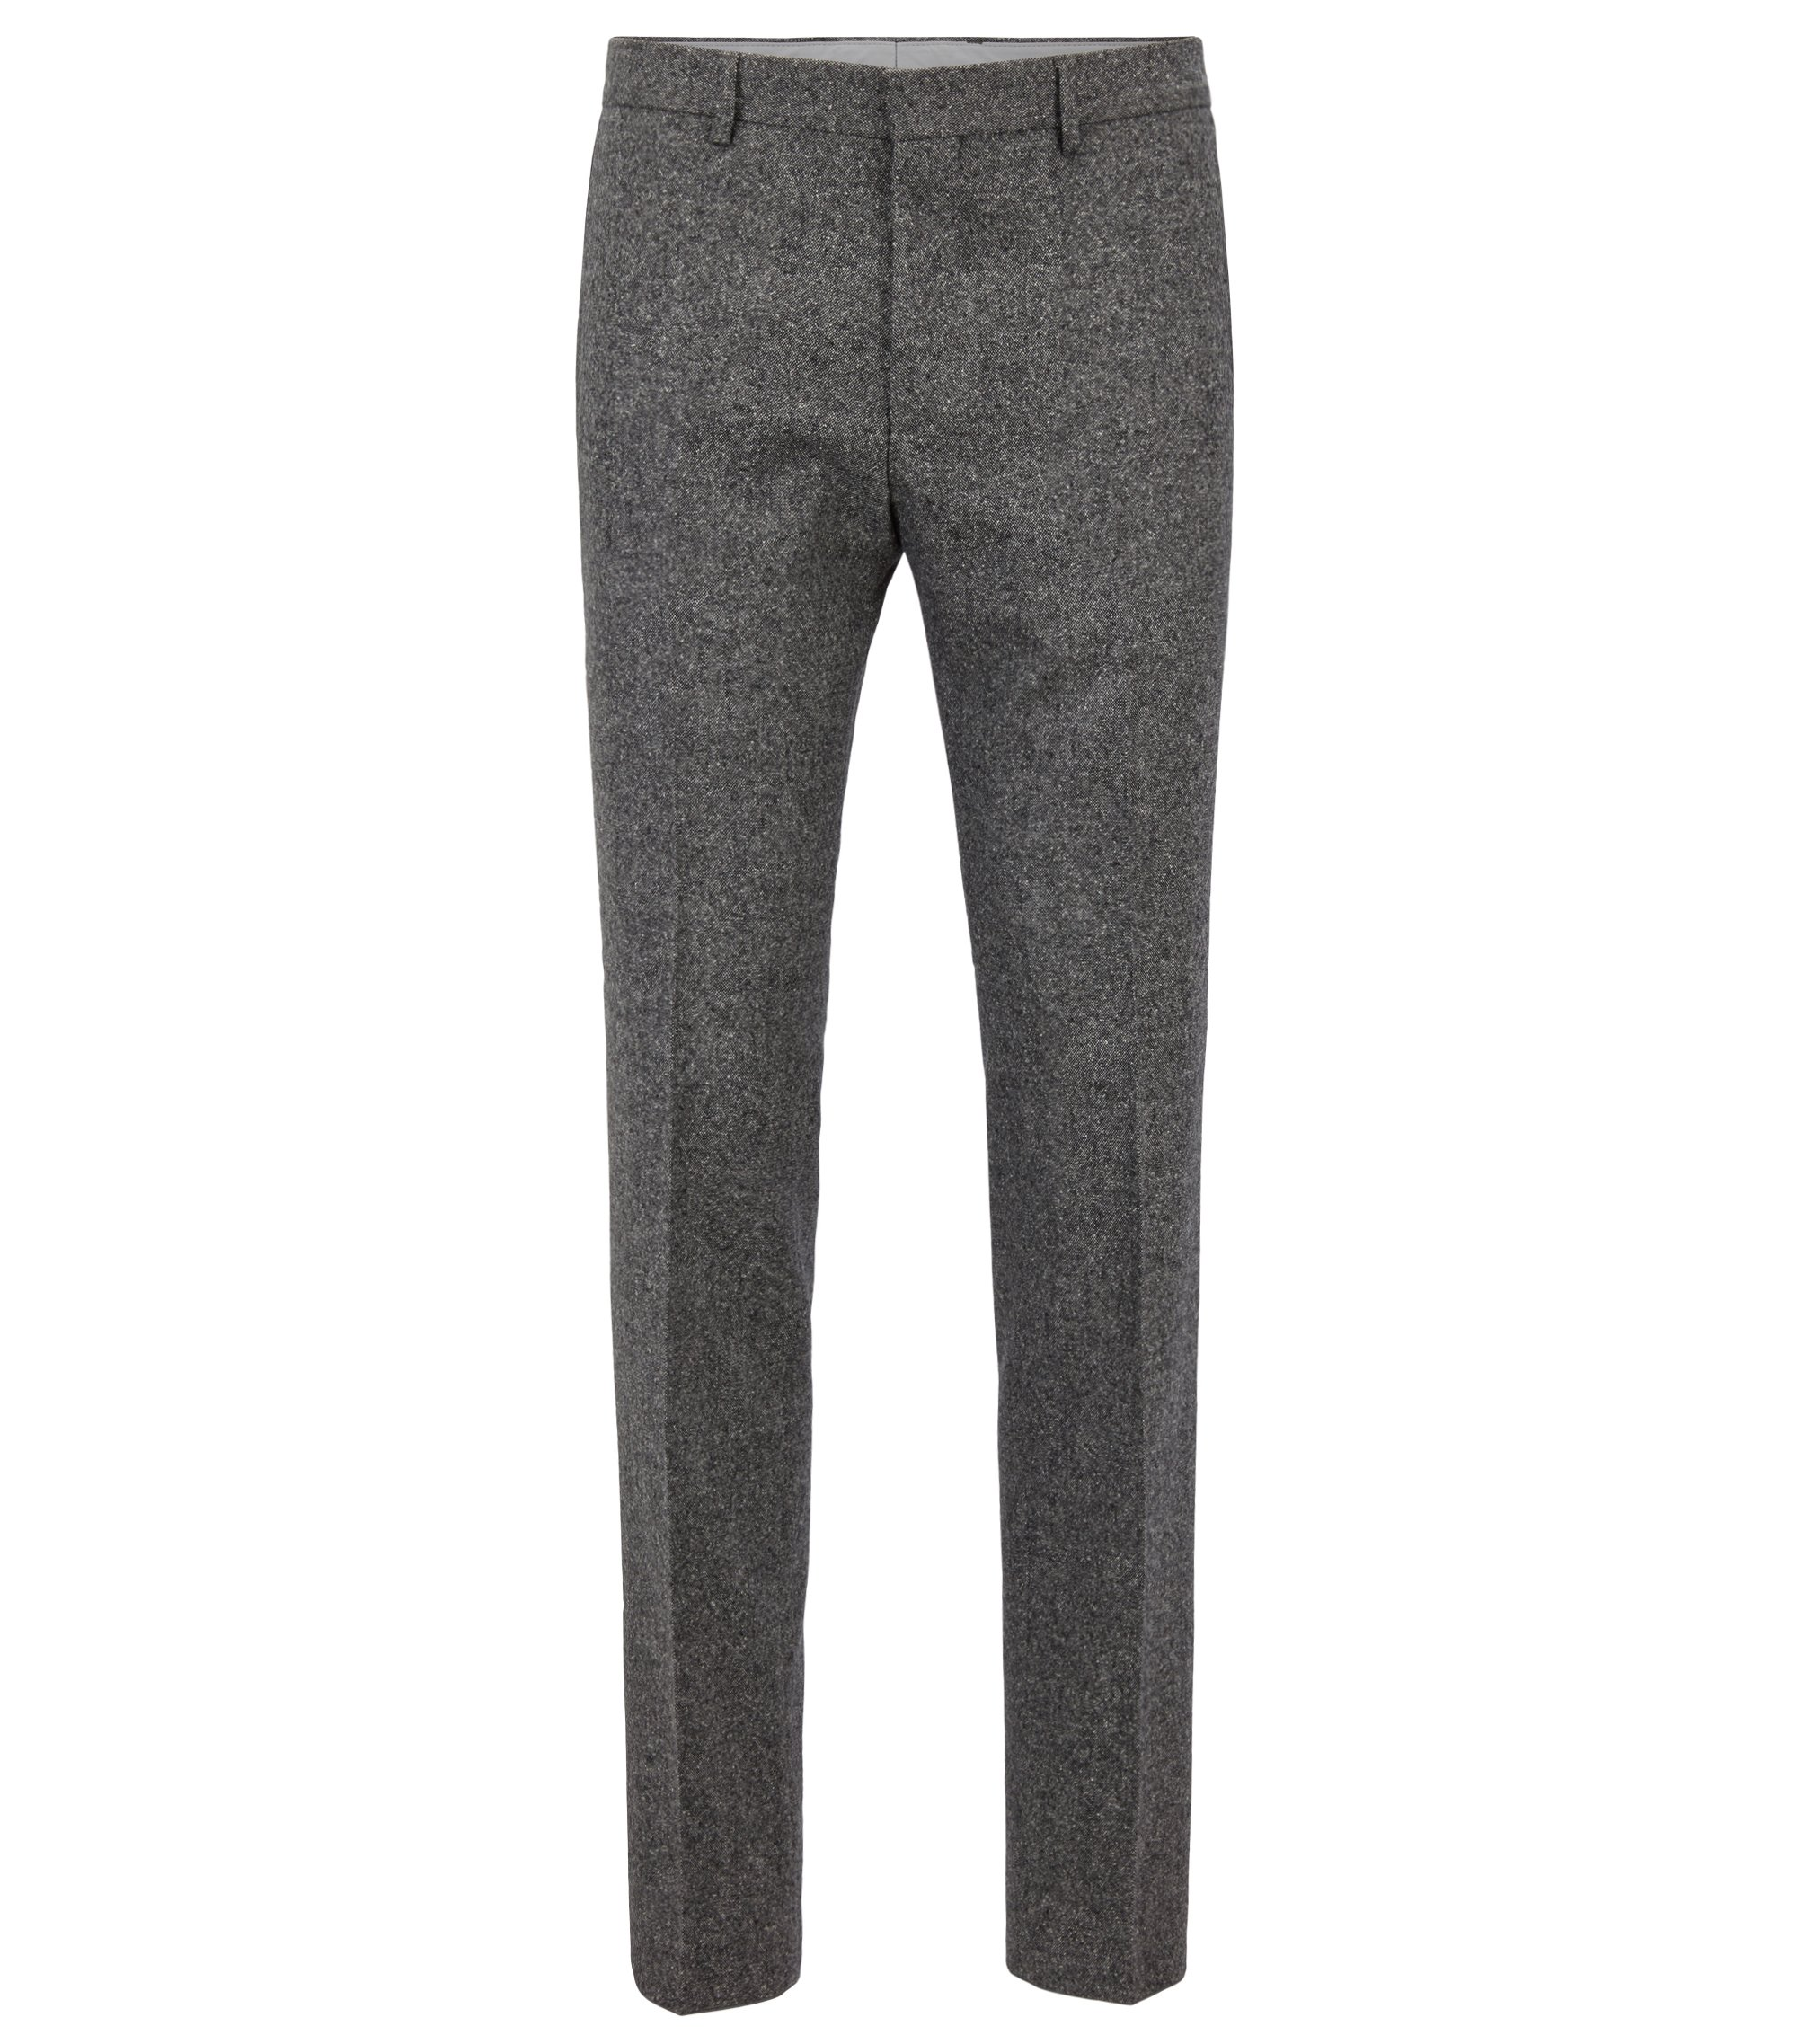 Slim-Fit Hose aus Tweed, Grau